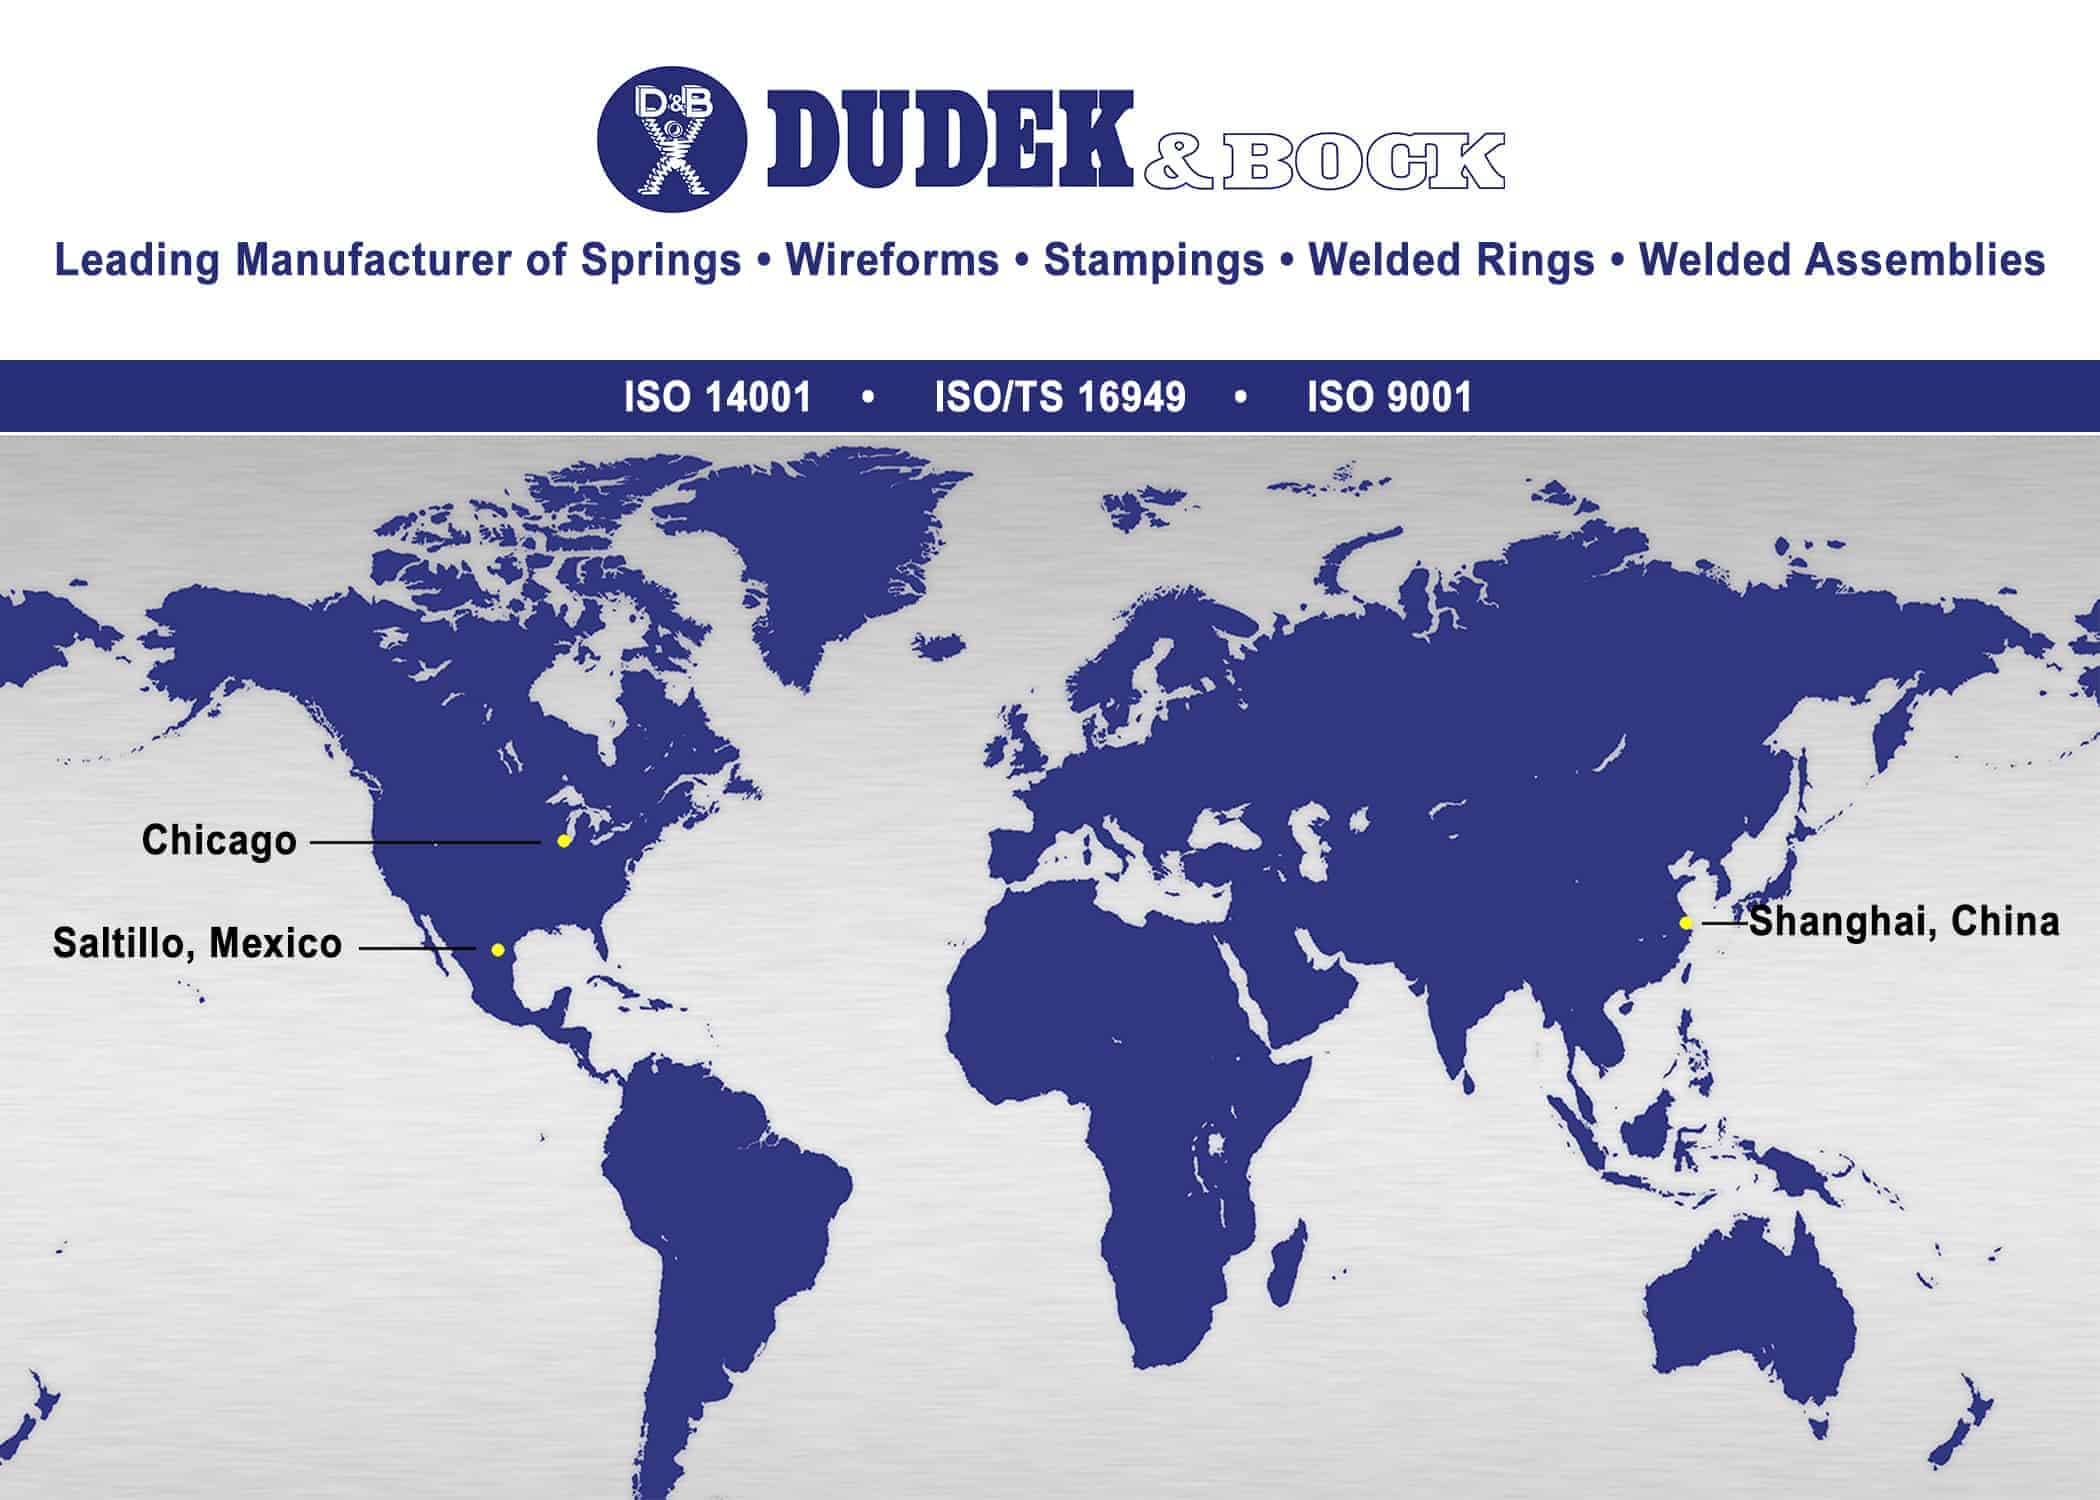 Dudek & Bock  custom springs, wireforms, assemblies